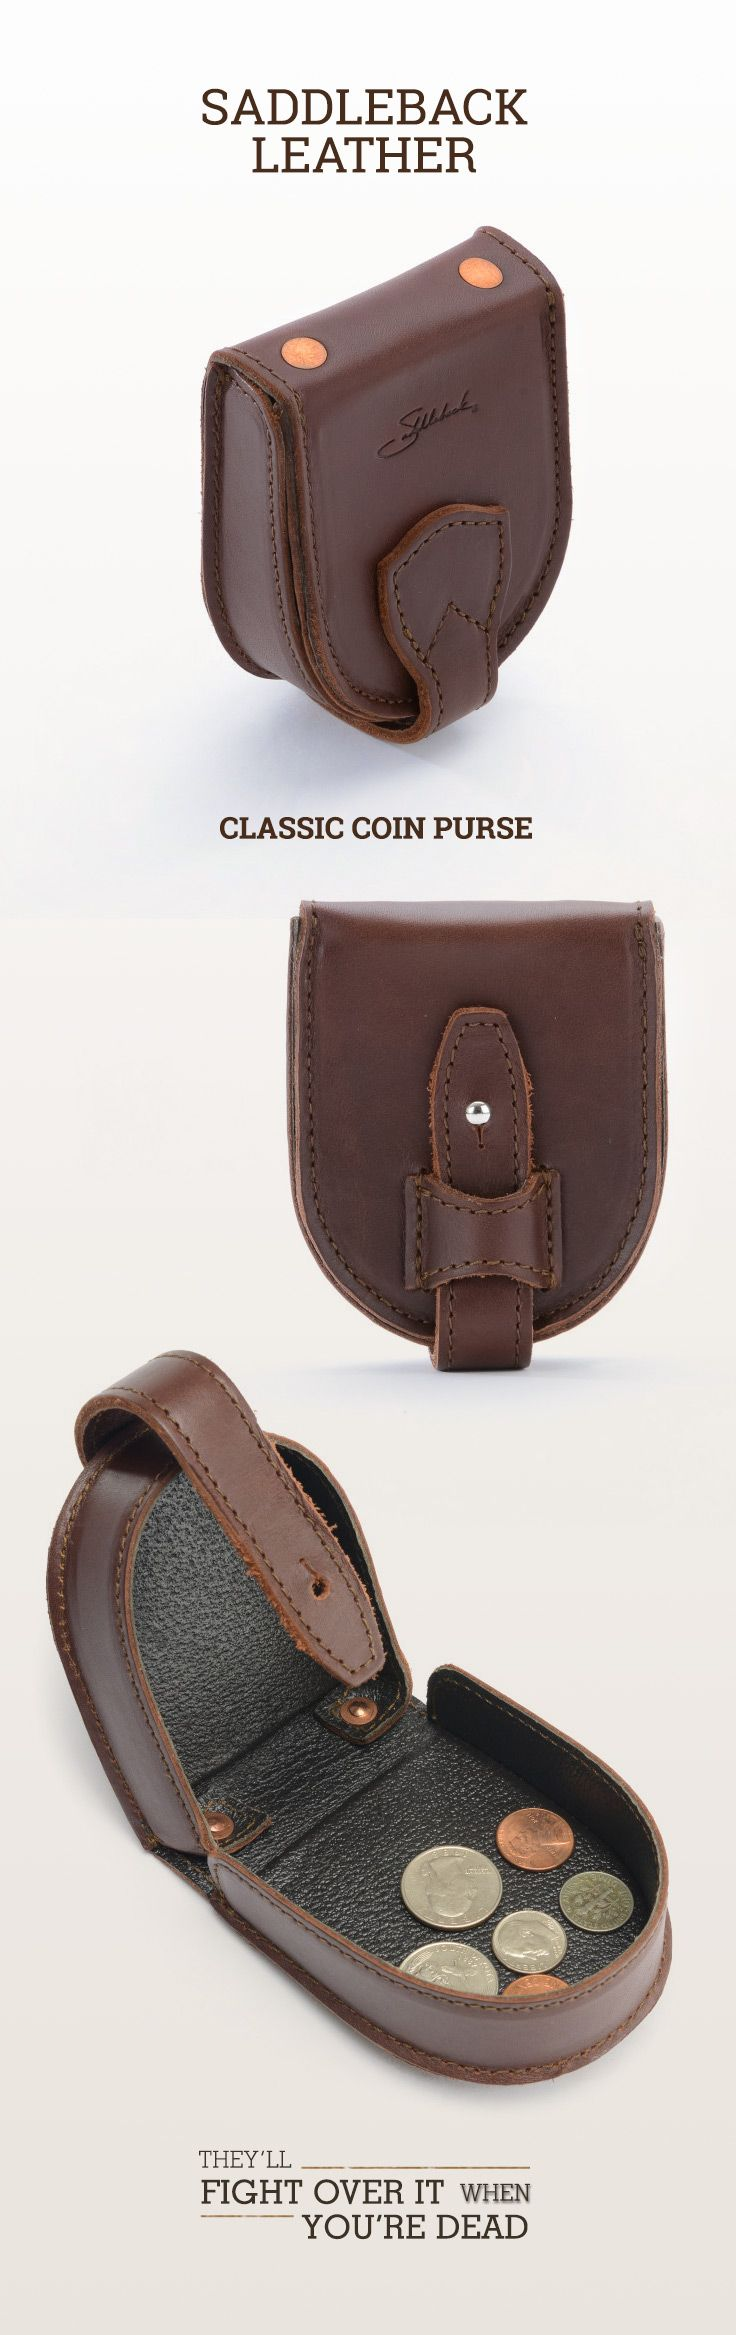 The Saddleback Leather Coin Purse in Chestnut | 100 Year Warranty | $38.00